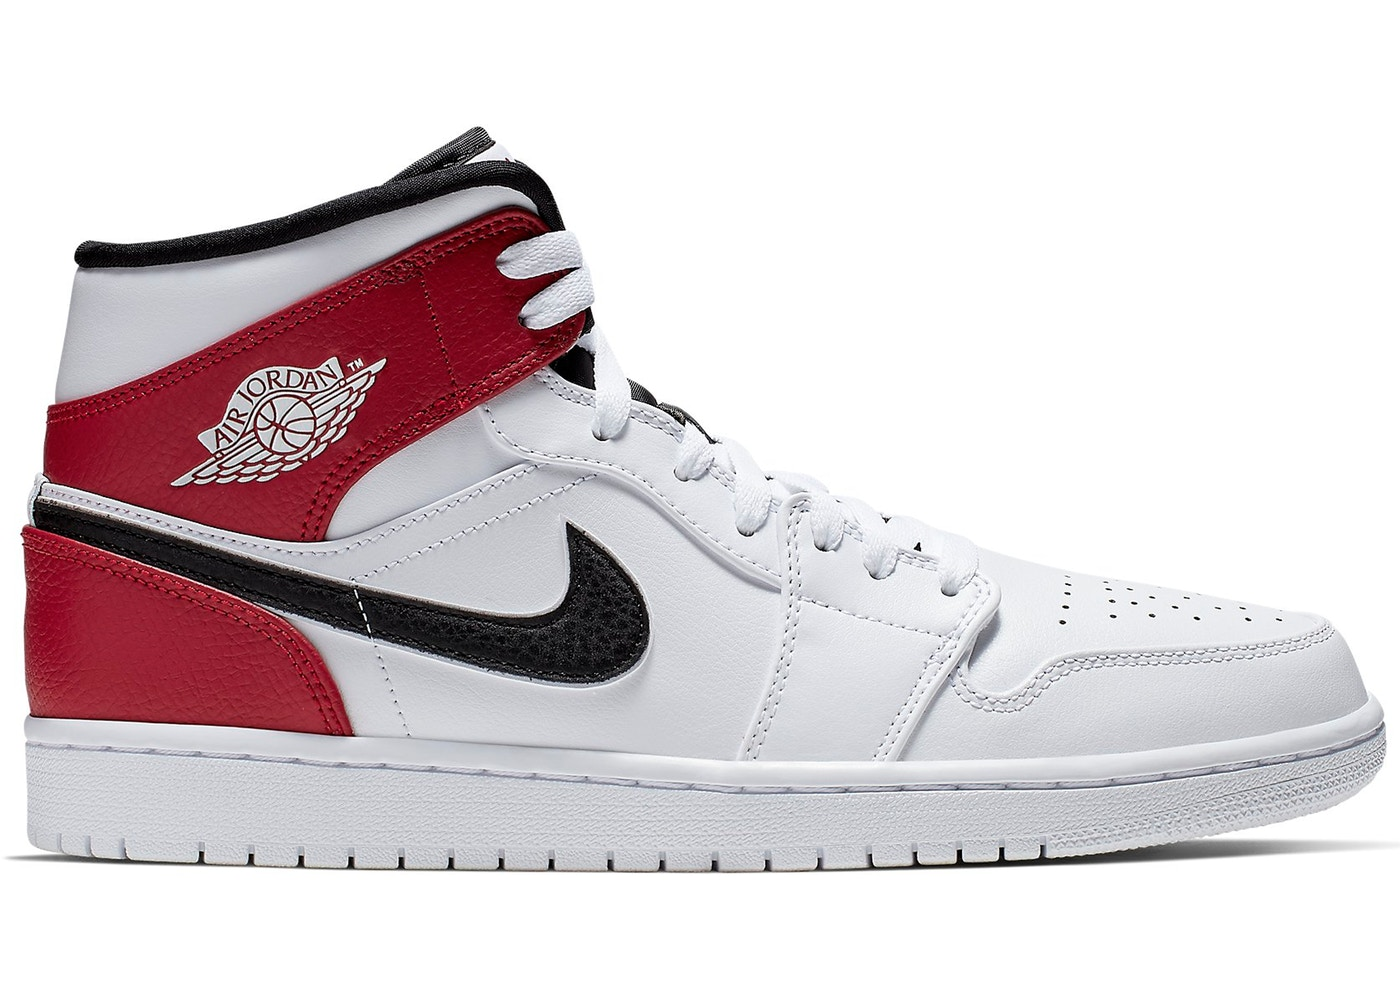 premium selection 40c3c 3dacc Sell. or Ask. Size 7. View All Bids. Jordan 1 Mid White Black ...